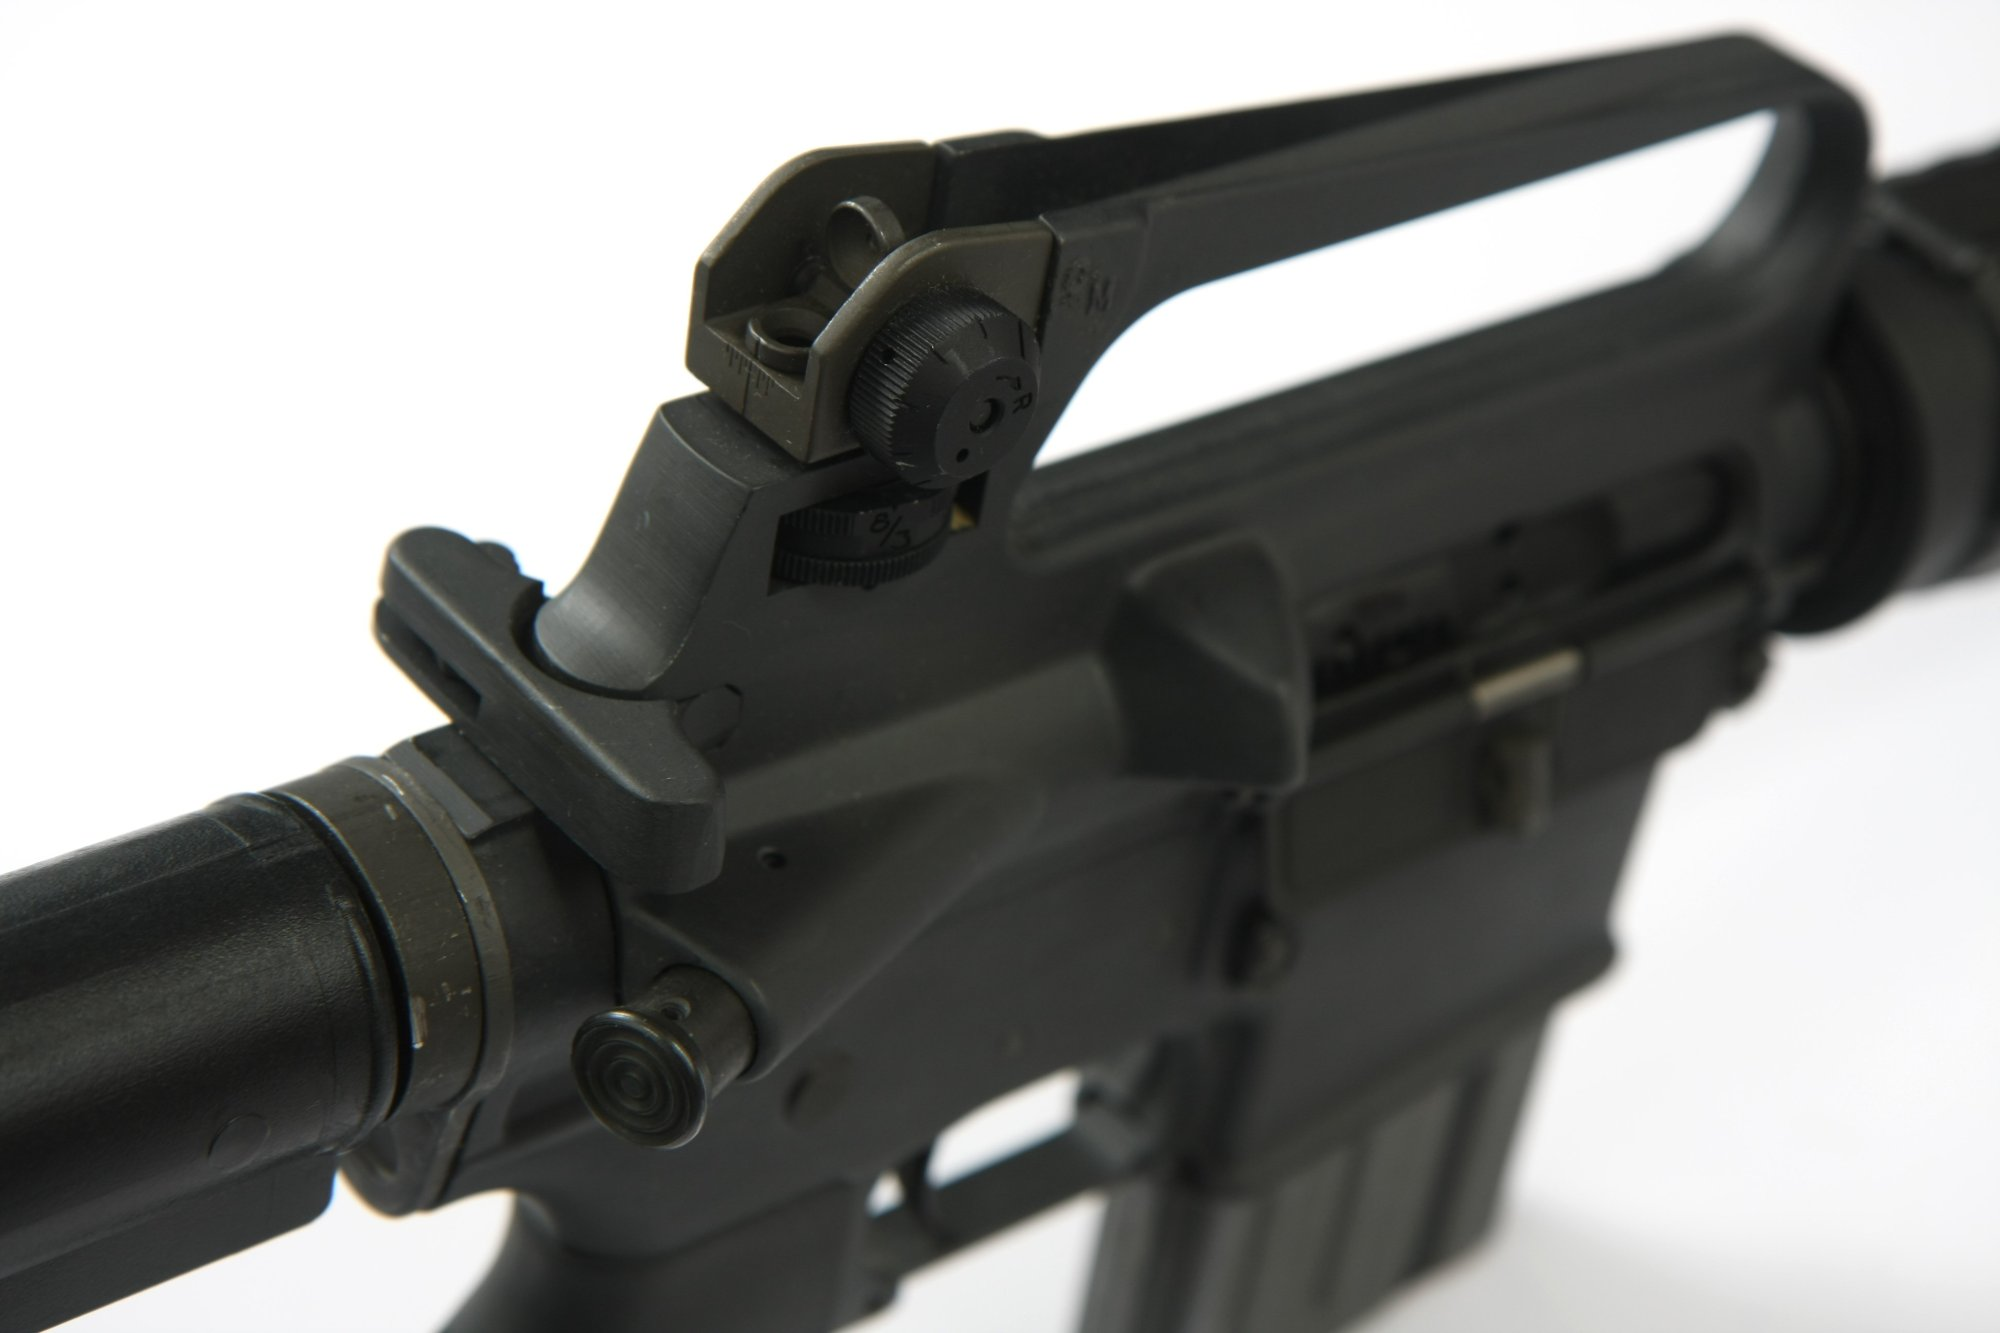 hight resolution of the ar 15a2 most distinctive ergonomic feature is the carrying handle and rear sight assembly on top of the receiver